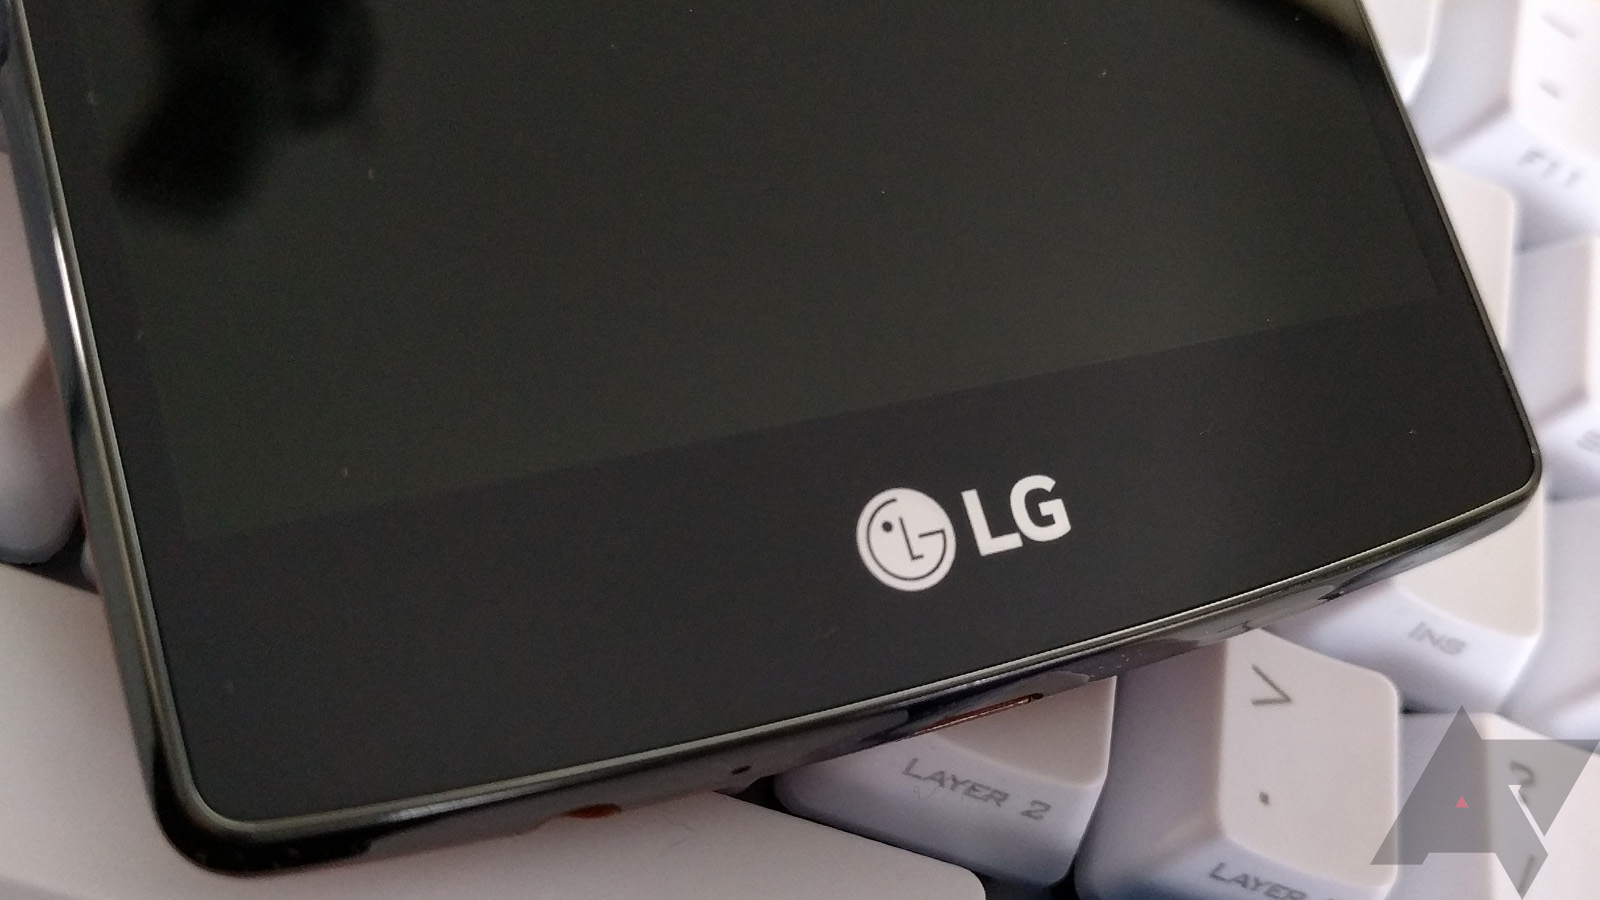 LG's Factory Reset Protection Can Be Bypassed In Mere Minutes